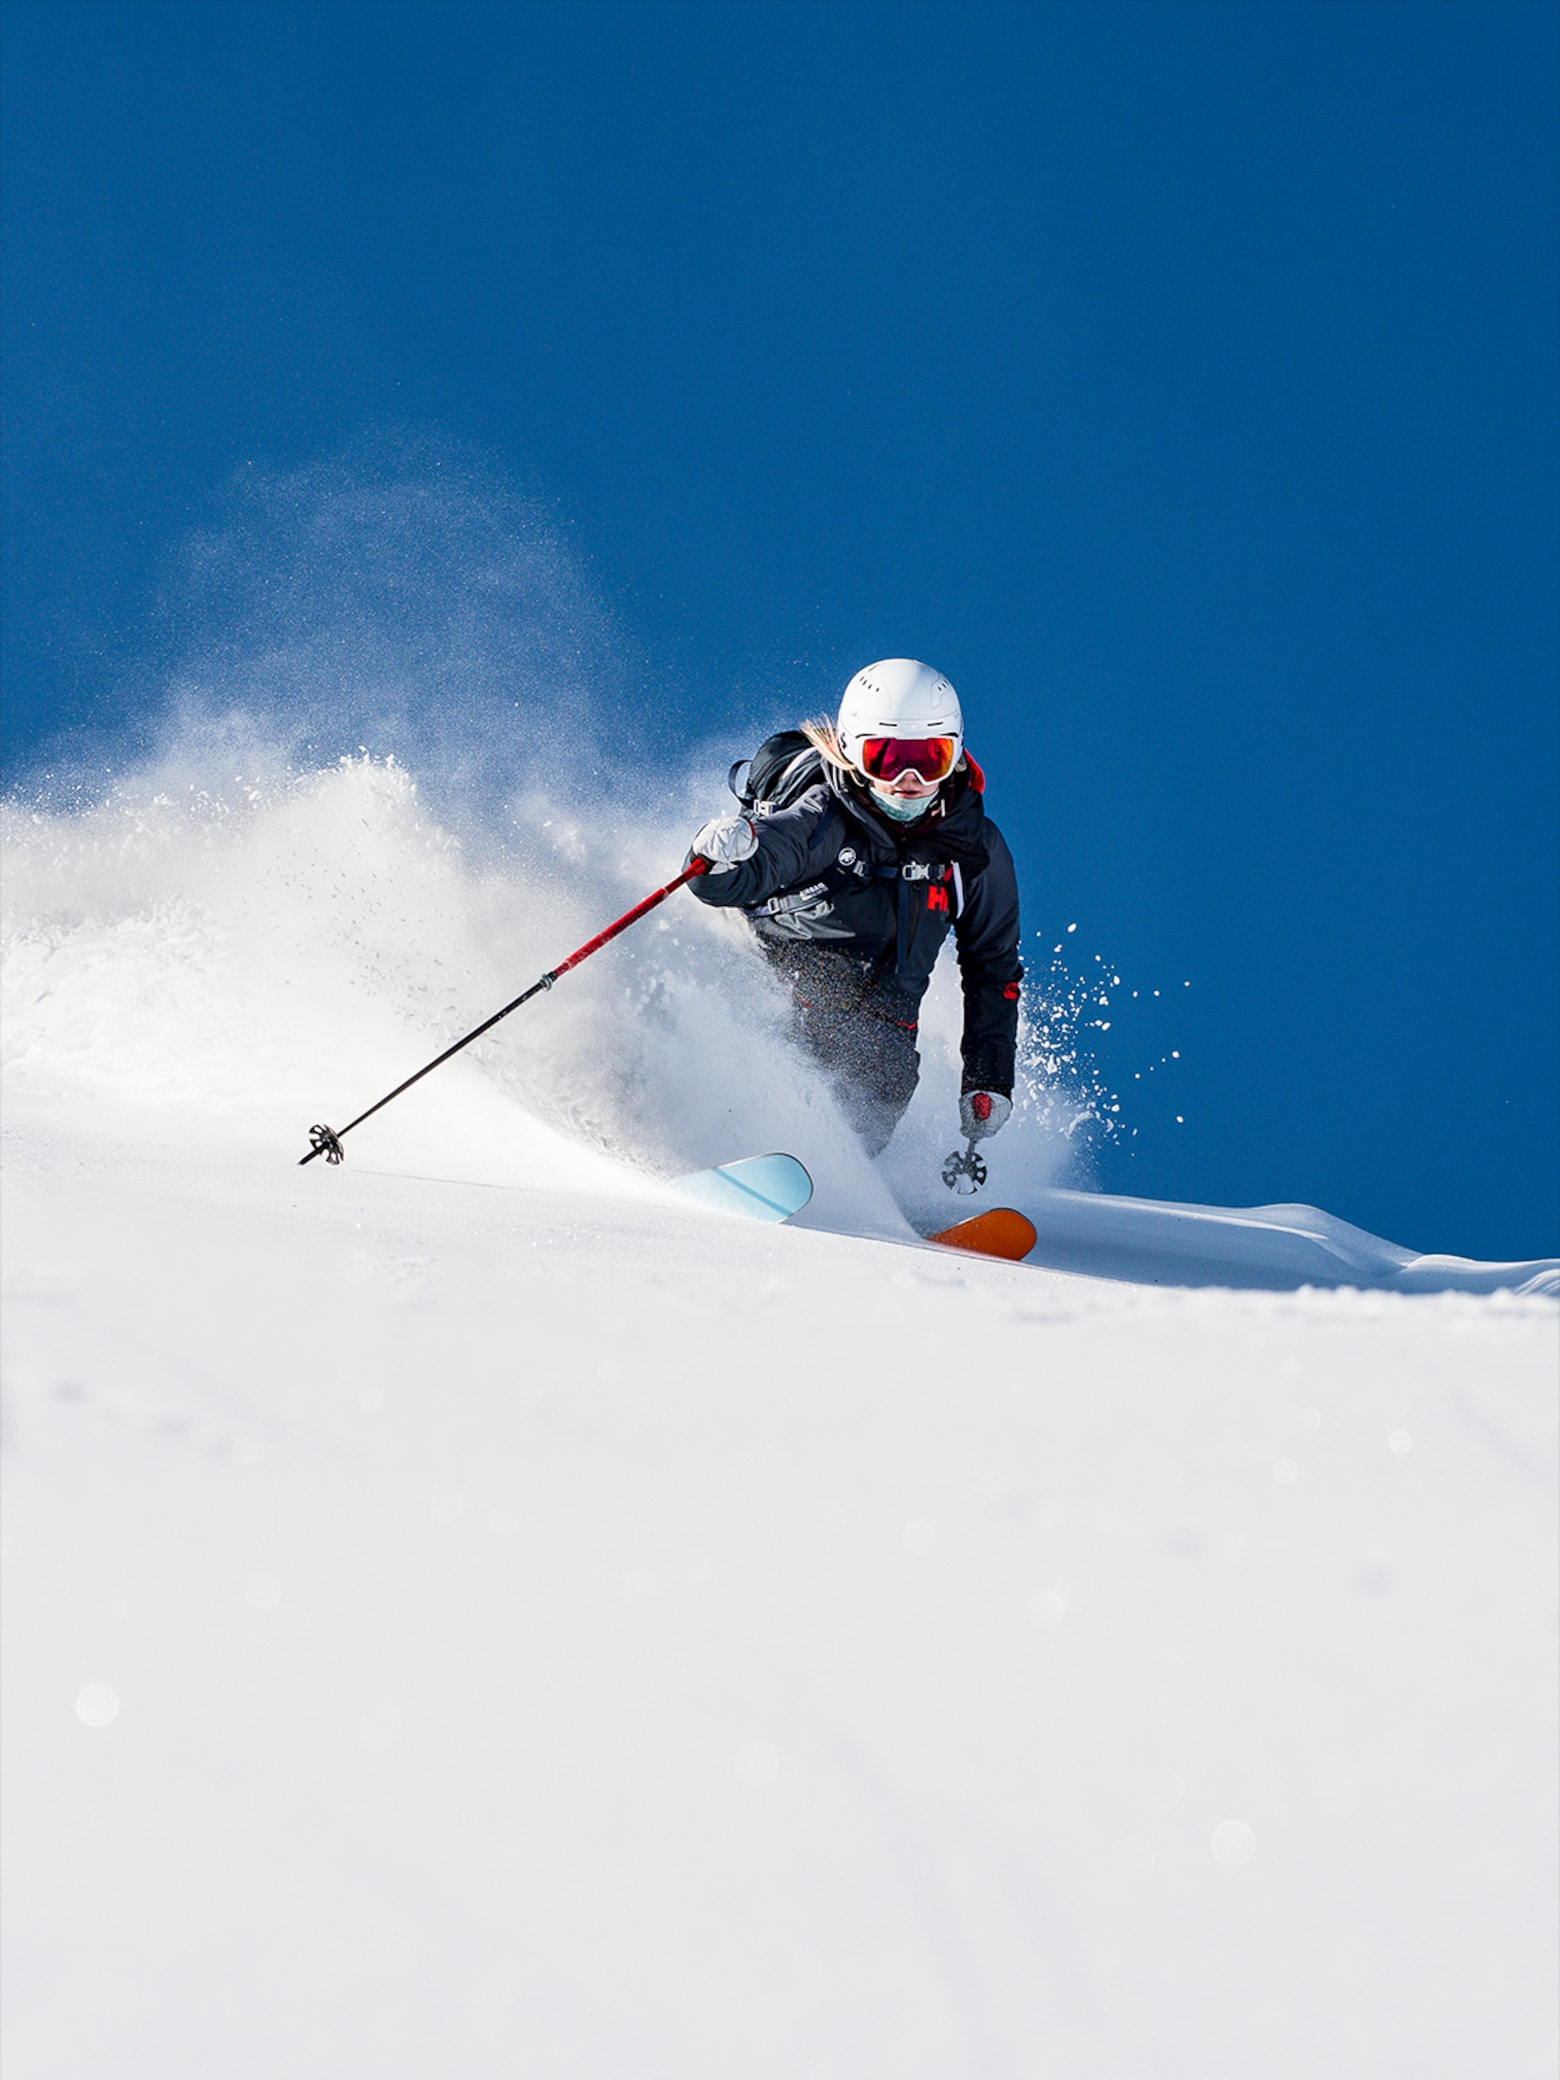 Functional skiwear tested by ski pros! Helly Hansen